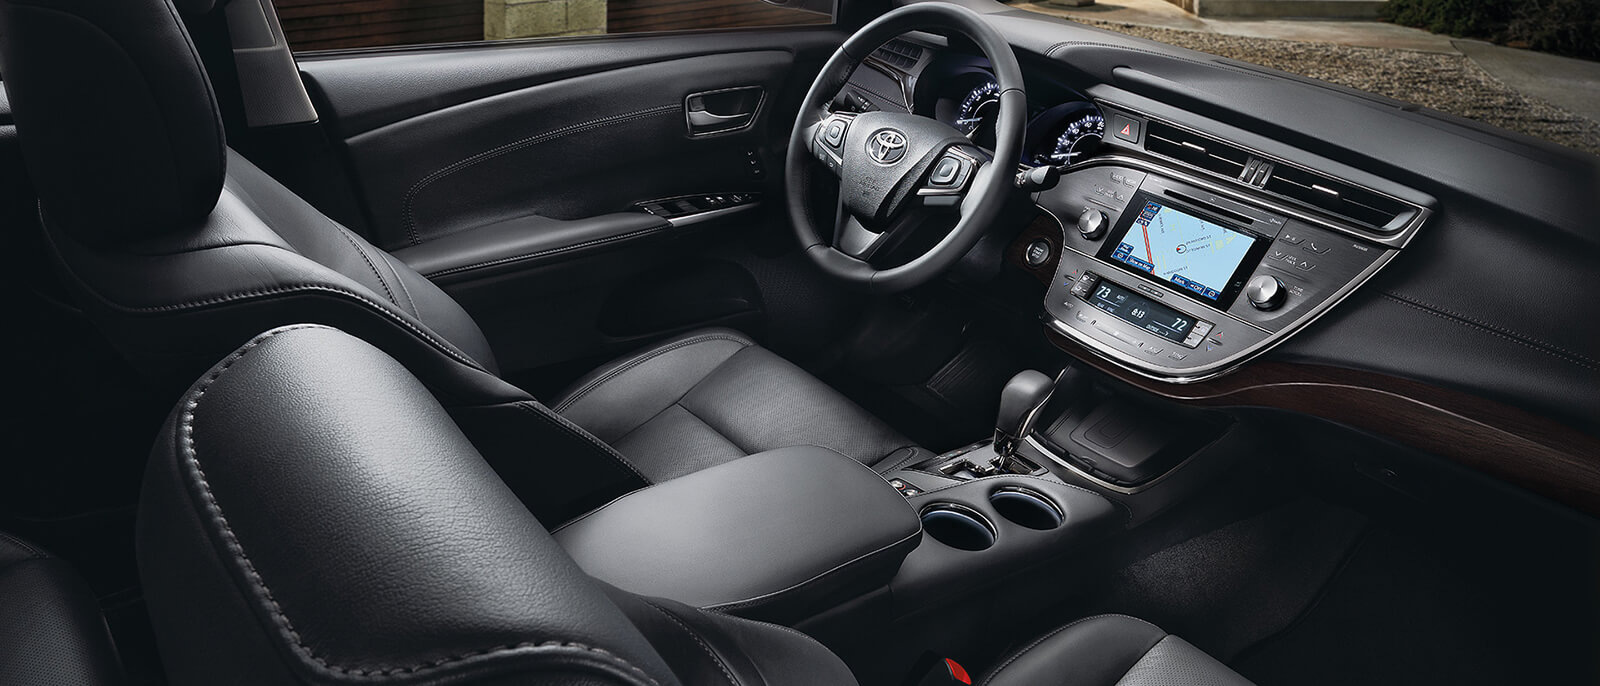 2016 Toyota Avalon Hybrid Interior